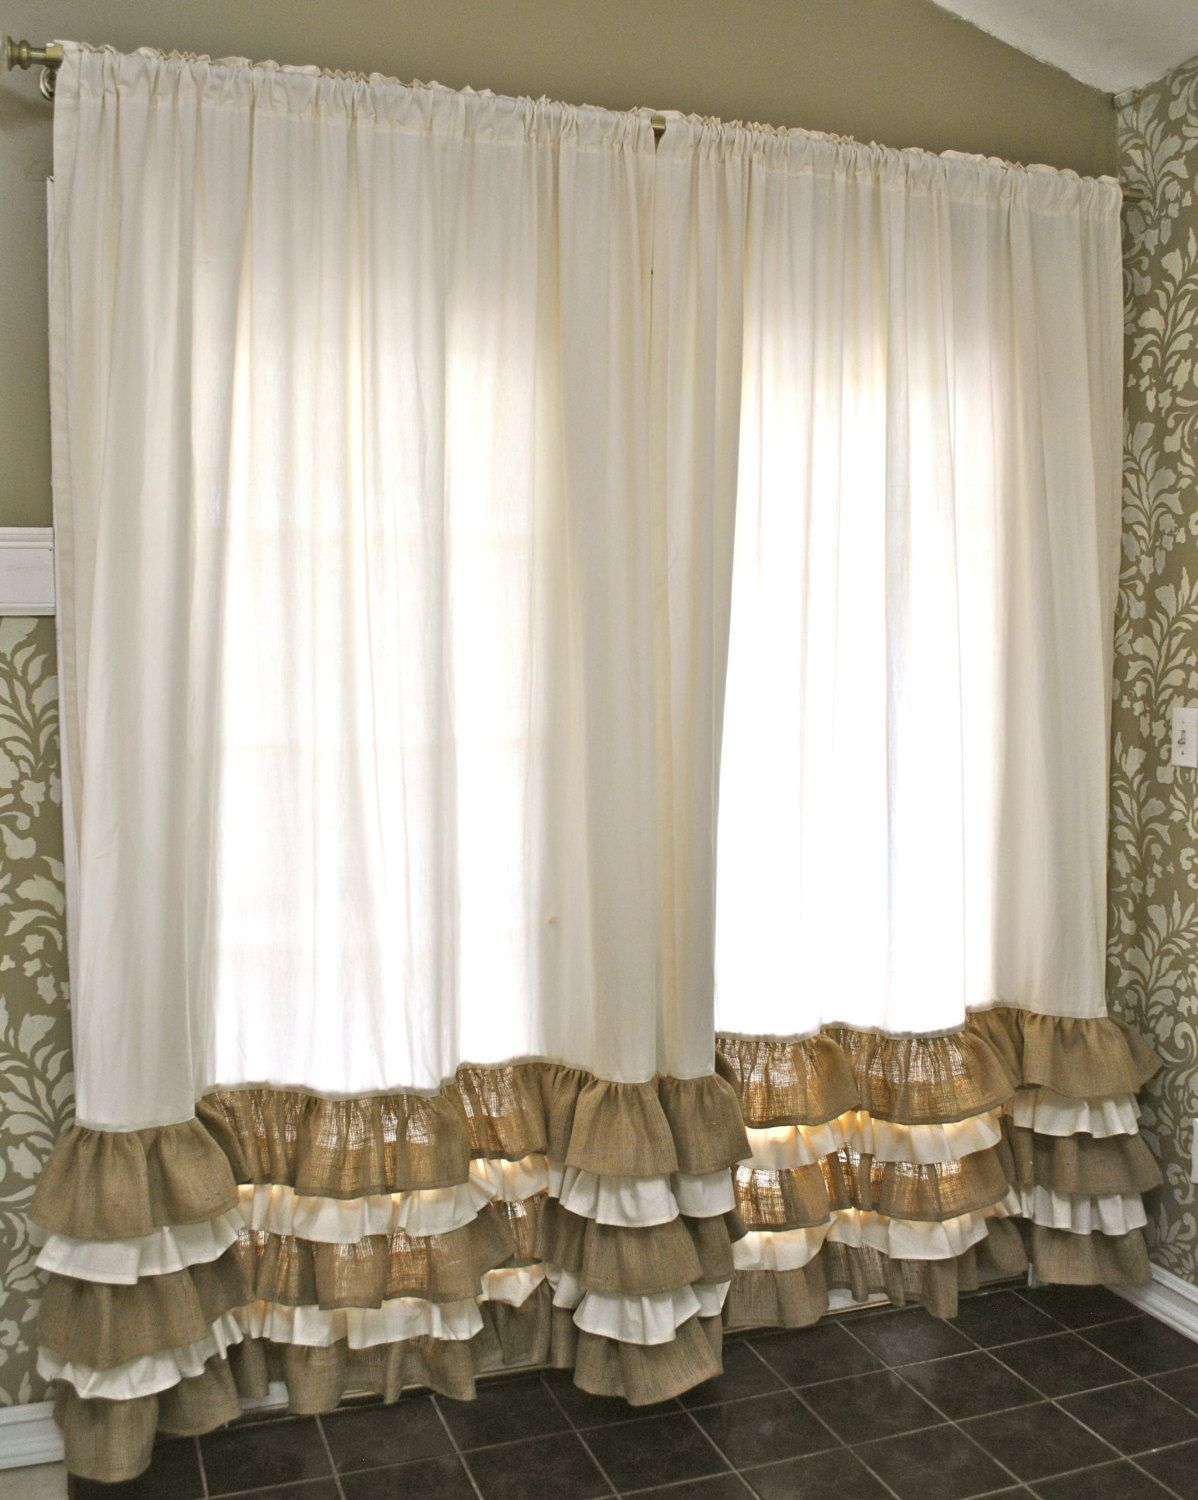 ruffled bottom burlap curtain drapes burlap curtain ideas and ruffled bottom burlap curtain drapes